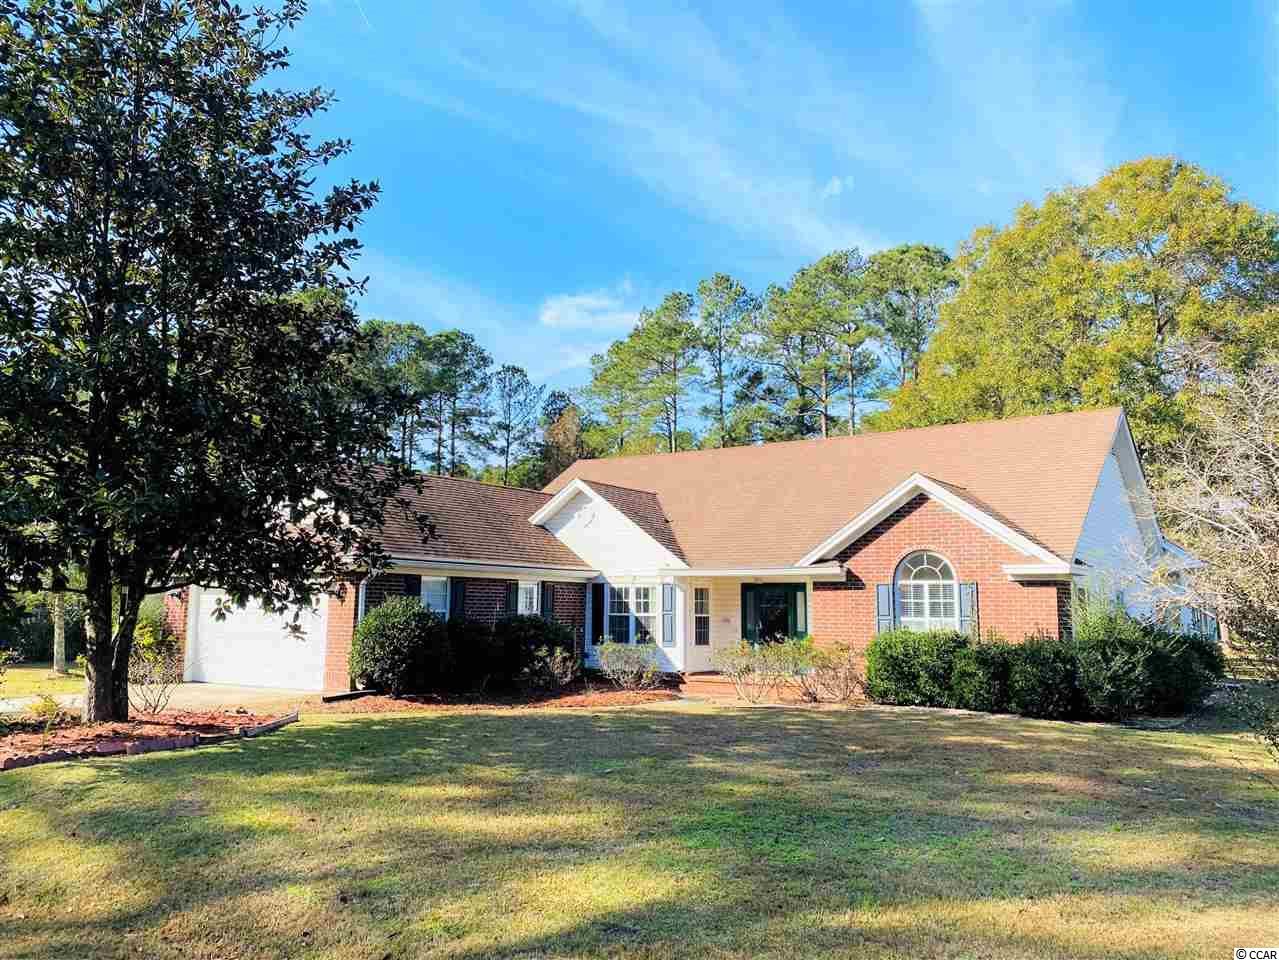 194 King George - Very nice brick ranch style home in Wedgefield Plantation, located in coastal Georgetown, South Carolina - one level easy living!  Split bedroom floor plan with three bedrooms and two baths.  Very bright and open space with room for entertaining inside and out. Vaulted ceilings in great room, separate formal dining room, kitchen with breakfast bar and nook, sun room and all season room over looking the large back yard and Wedgefield Golf Course. Owner's suite with vaulted ceilings, bath with walk-in shower, garden tub, and double vanity.  The other two bedrooms are spacious with a shared bath in between. Additionally, there is a two car garage and a detached storage building.  Wedgefield Plantation is an active and beautiful community with it's own public golf course and a boat landing into the Black River.  Enjoy wonderful dining onsite at The Manor House, an easy golf cart ride away.  Separate memberships available if you so wish - pool, social and golf. Close to historic Georgetown waterfront Harbor Walk, shopping, wonderful restaurants, fresh seafood vendors, and access to five rivers that surround the area with an easy drive to Pawleys Island, the closest public beach access.  *Buyer responsible for verifying square footage.